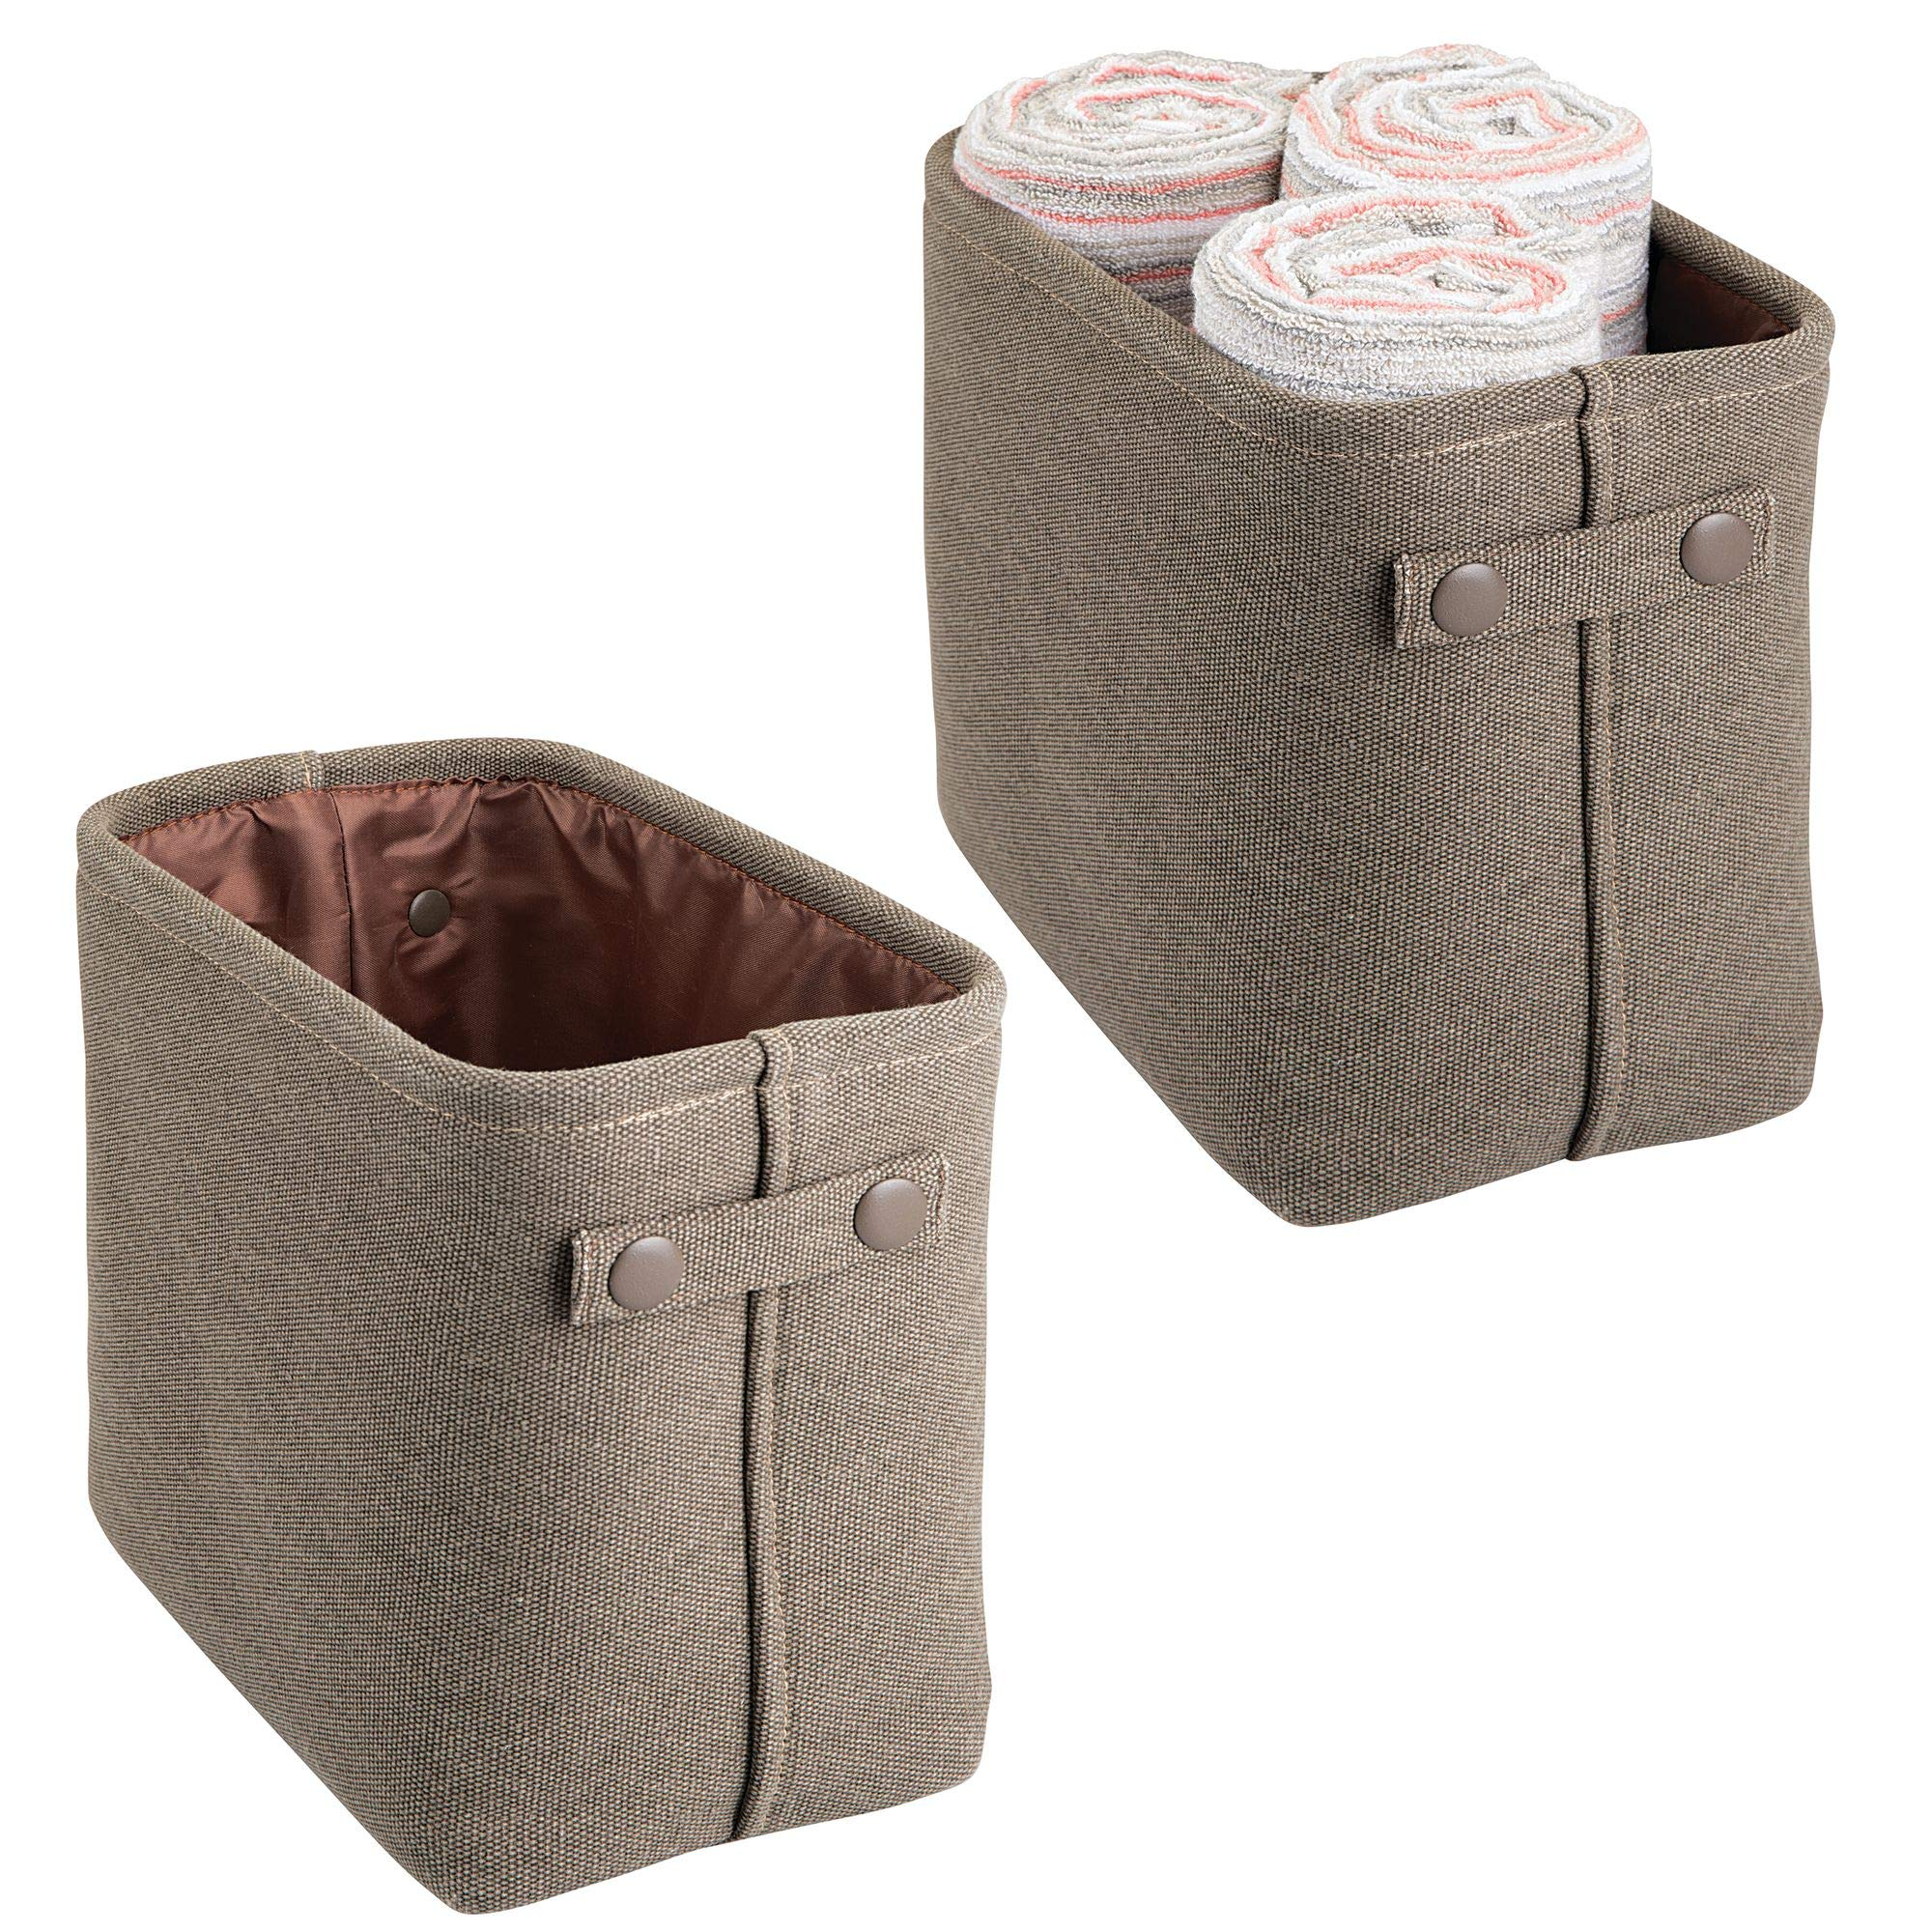 mDesign Soft Cotton Fabric Bathroom Storage Bin Basket with Coated Interior and Attached Handles - Organizer for Closets, Cabinets, Shelves - Pack of 2, Rectangular with Textured Weave, Espresso/Brown by mDesign